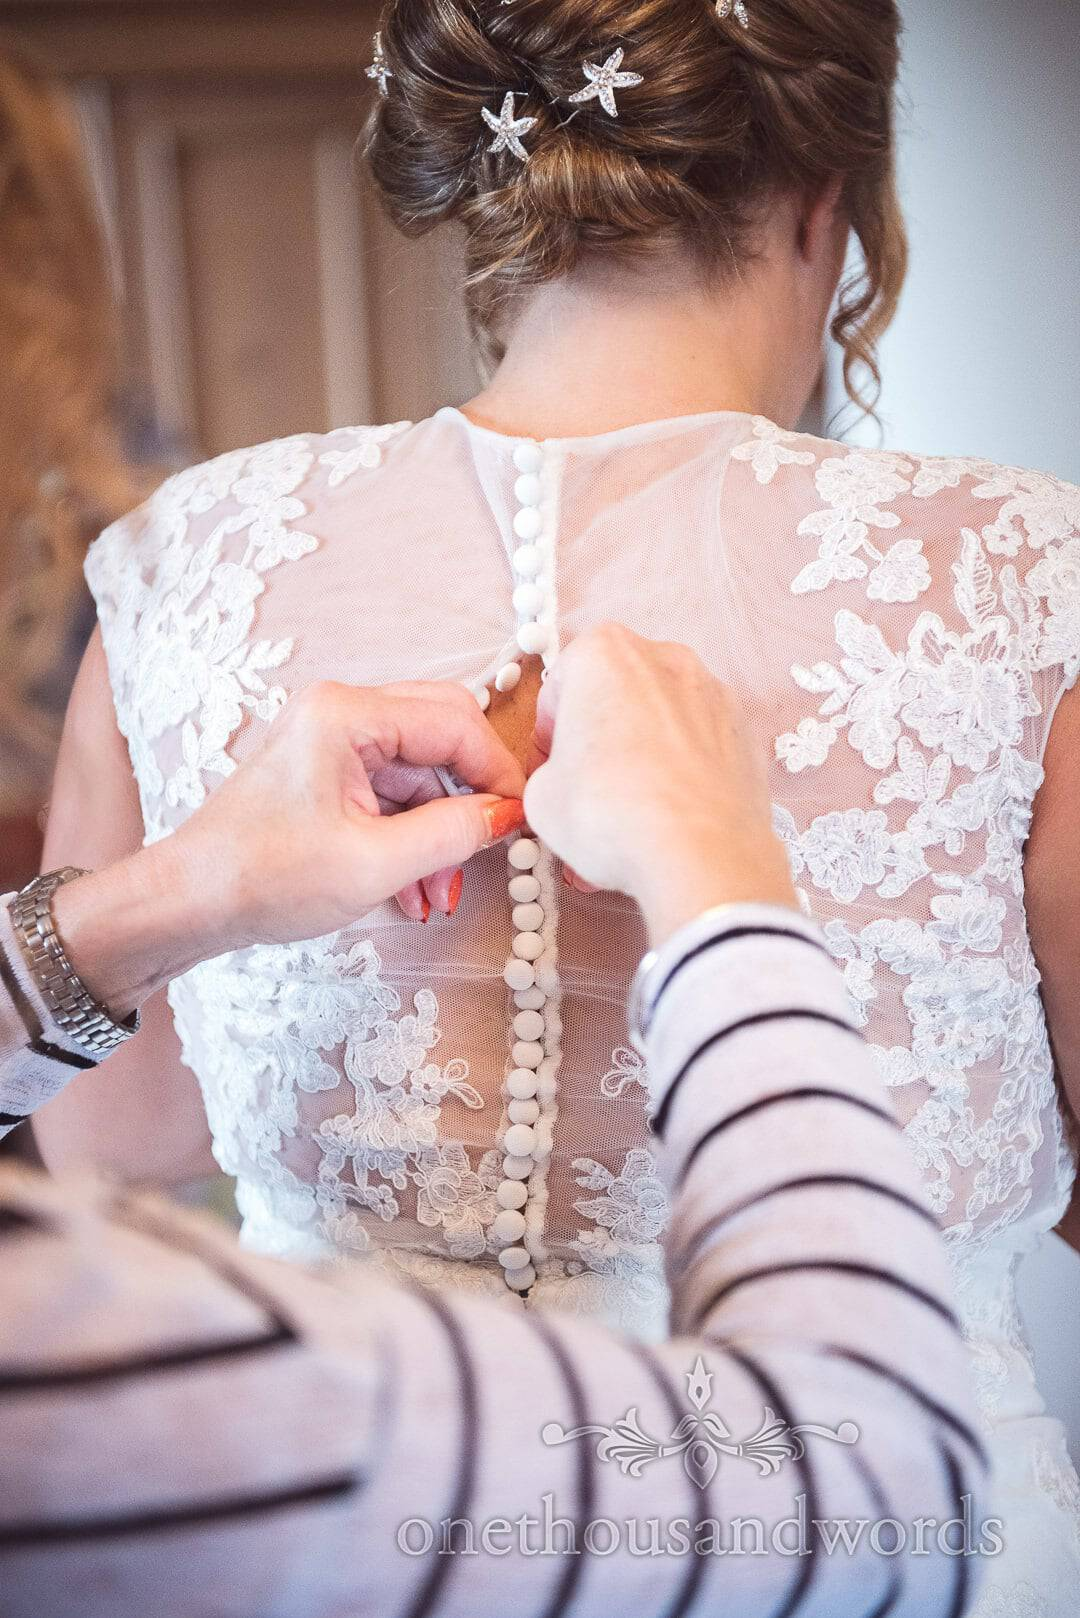 Bride is buttoned into white lace detailed wedding dress on wedding morning in Dorset